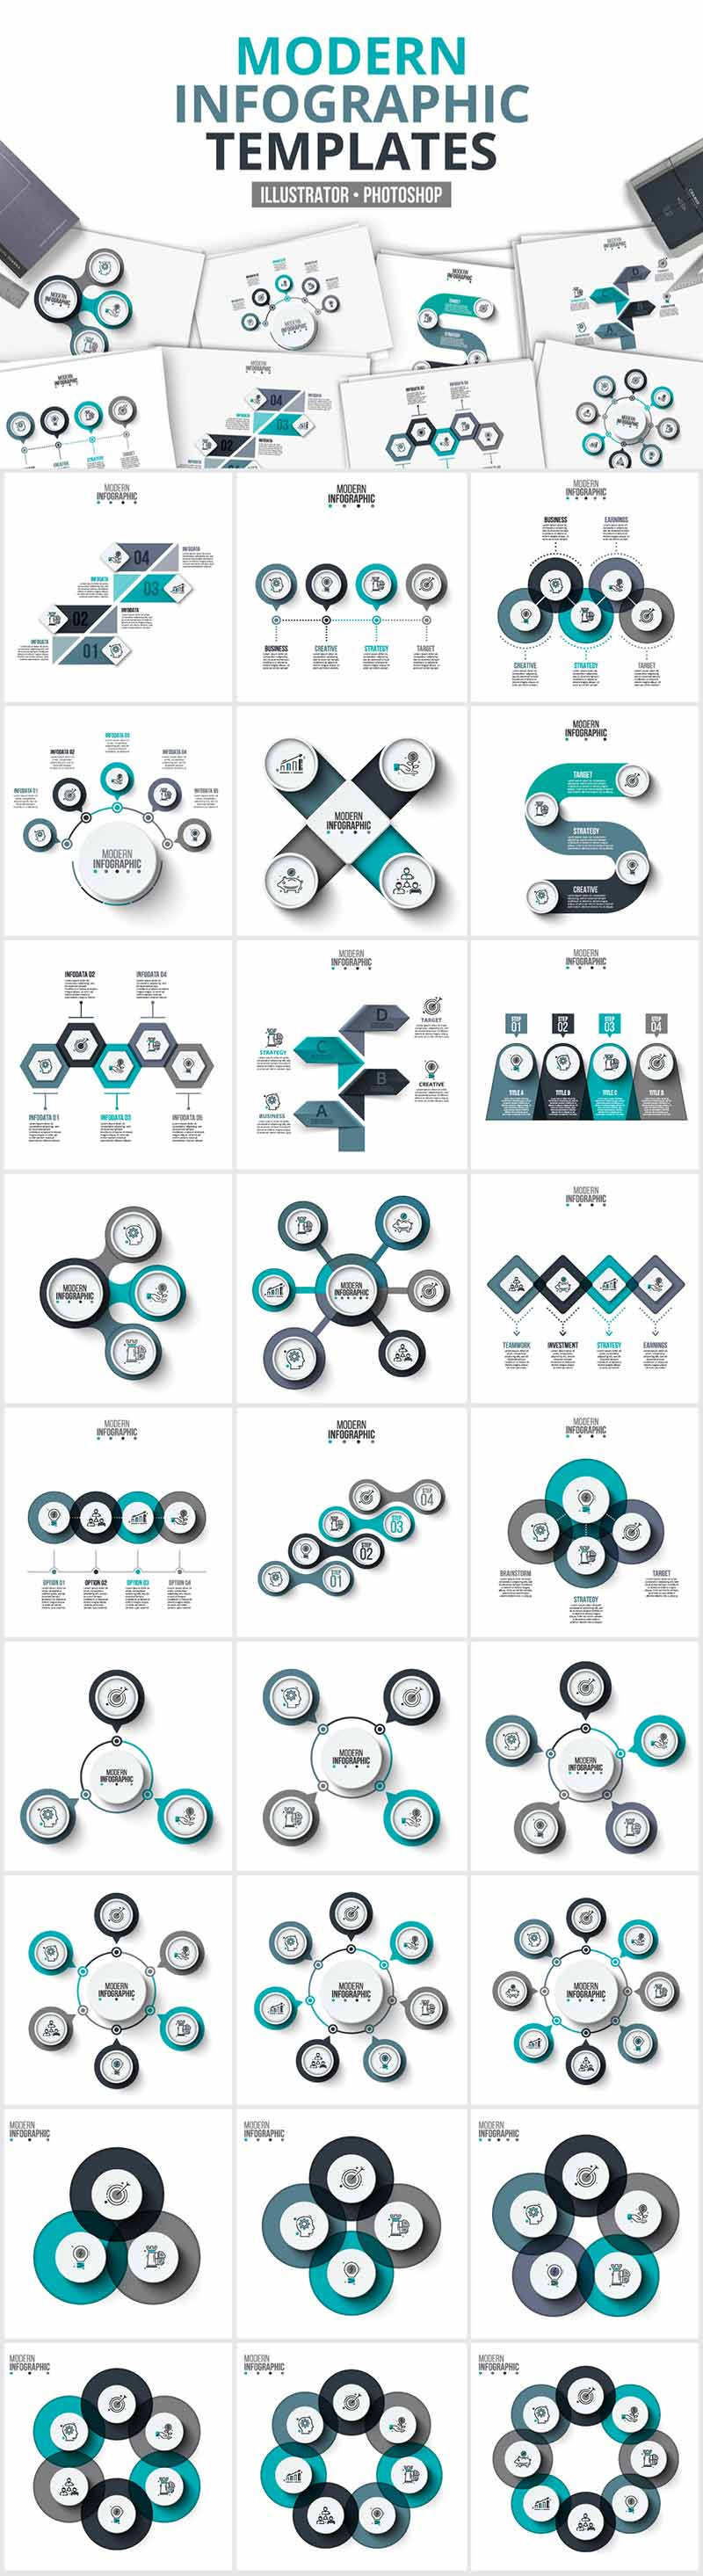 1200 Interactive Infographic Templates- 05_Modern